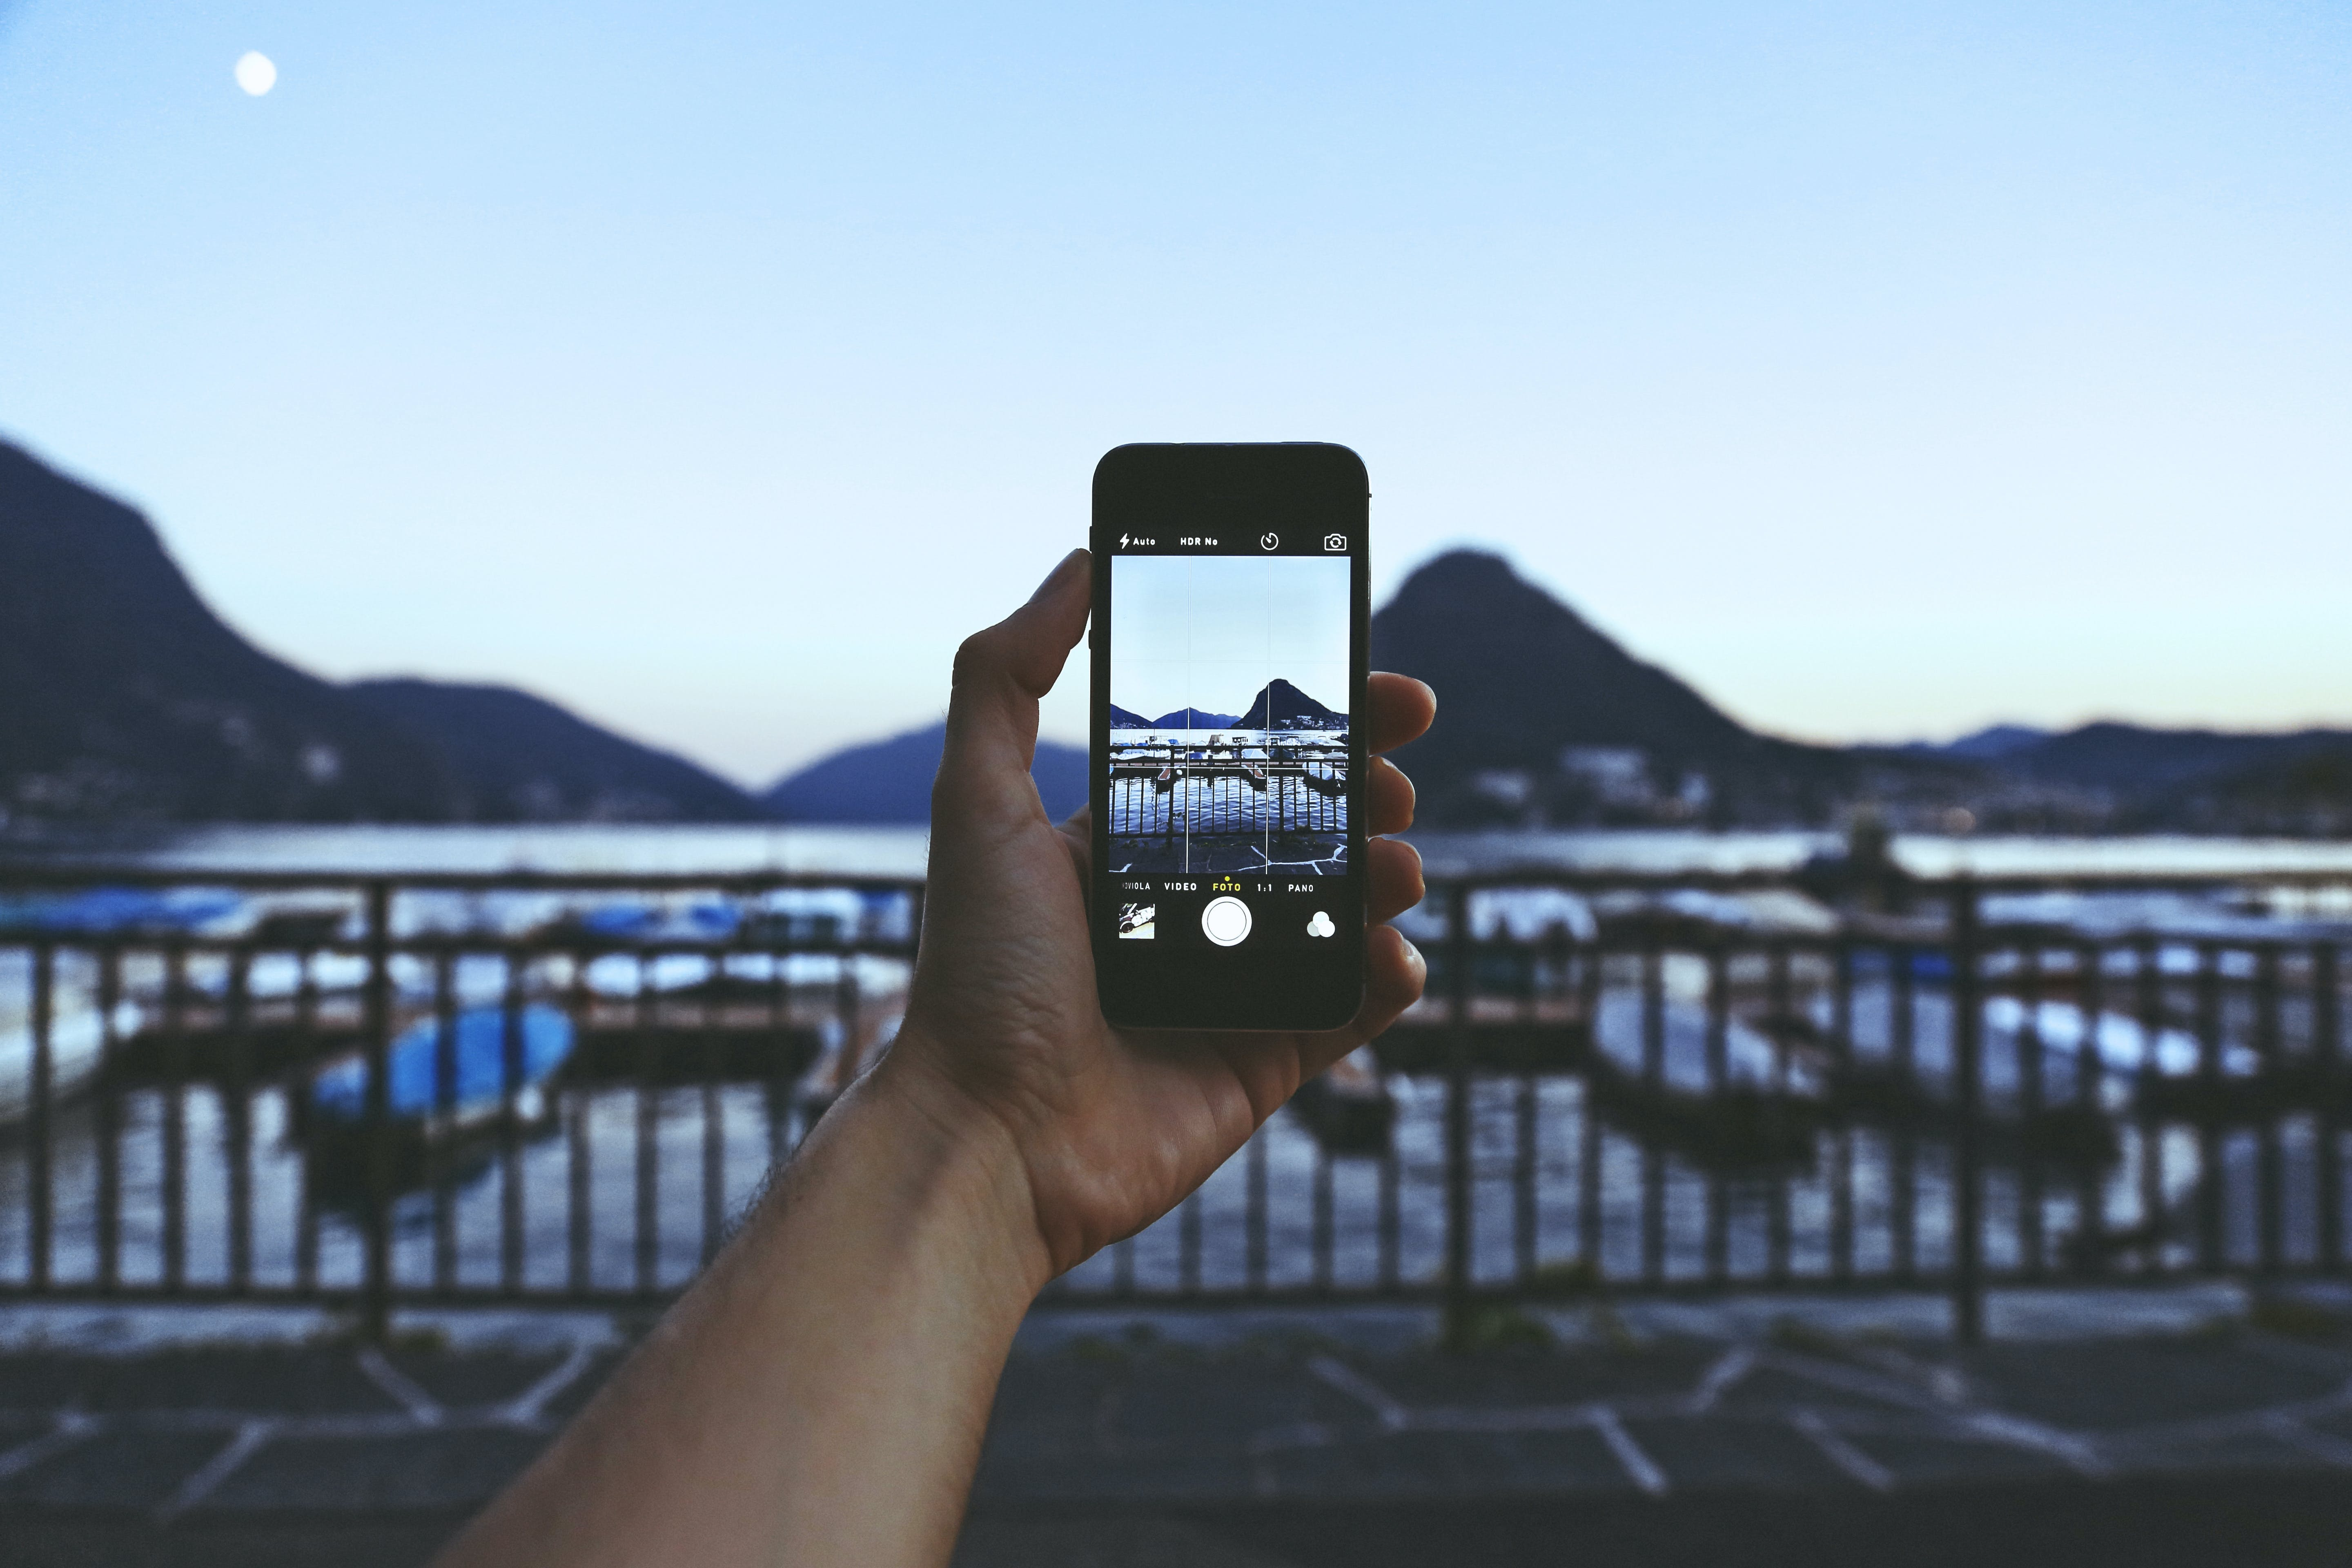 Person Holding Iphone Taking Picture of Mountain Near Body of Water